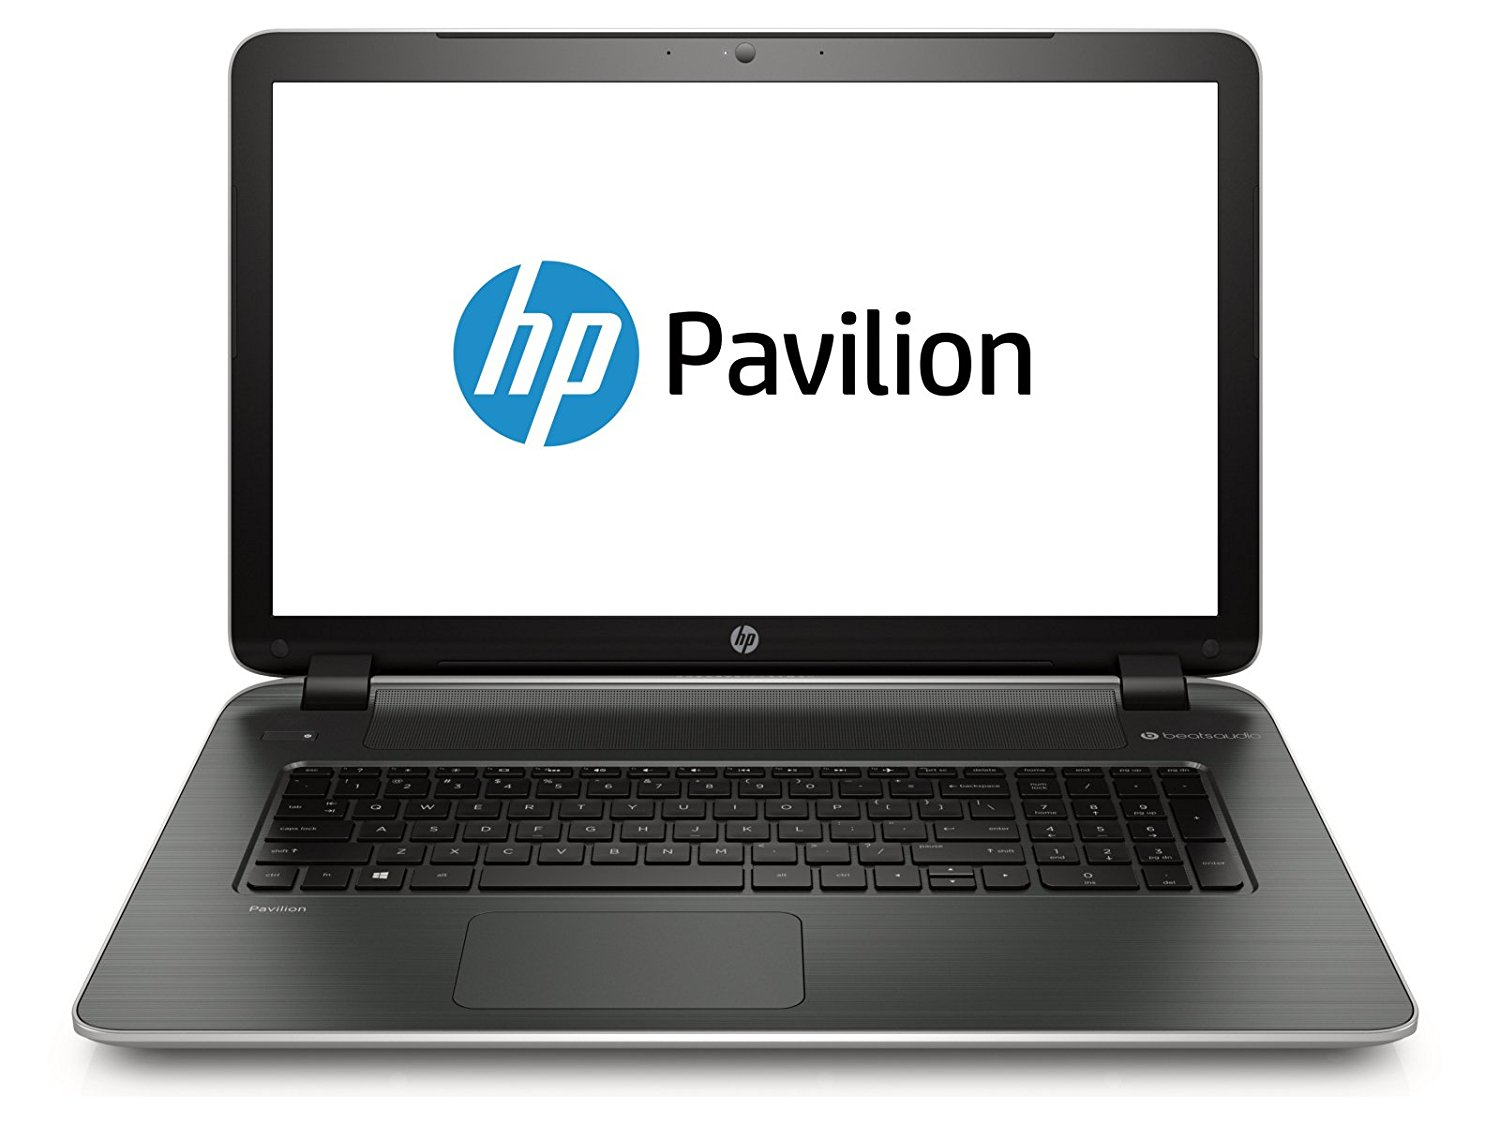 hp pavilion 17 3 laptop 1 6ghz 8gb 1tb windows 10 17 g136nr ebay. Black Bedroom Furniture Sets. Home Design Ideas